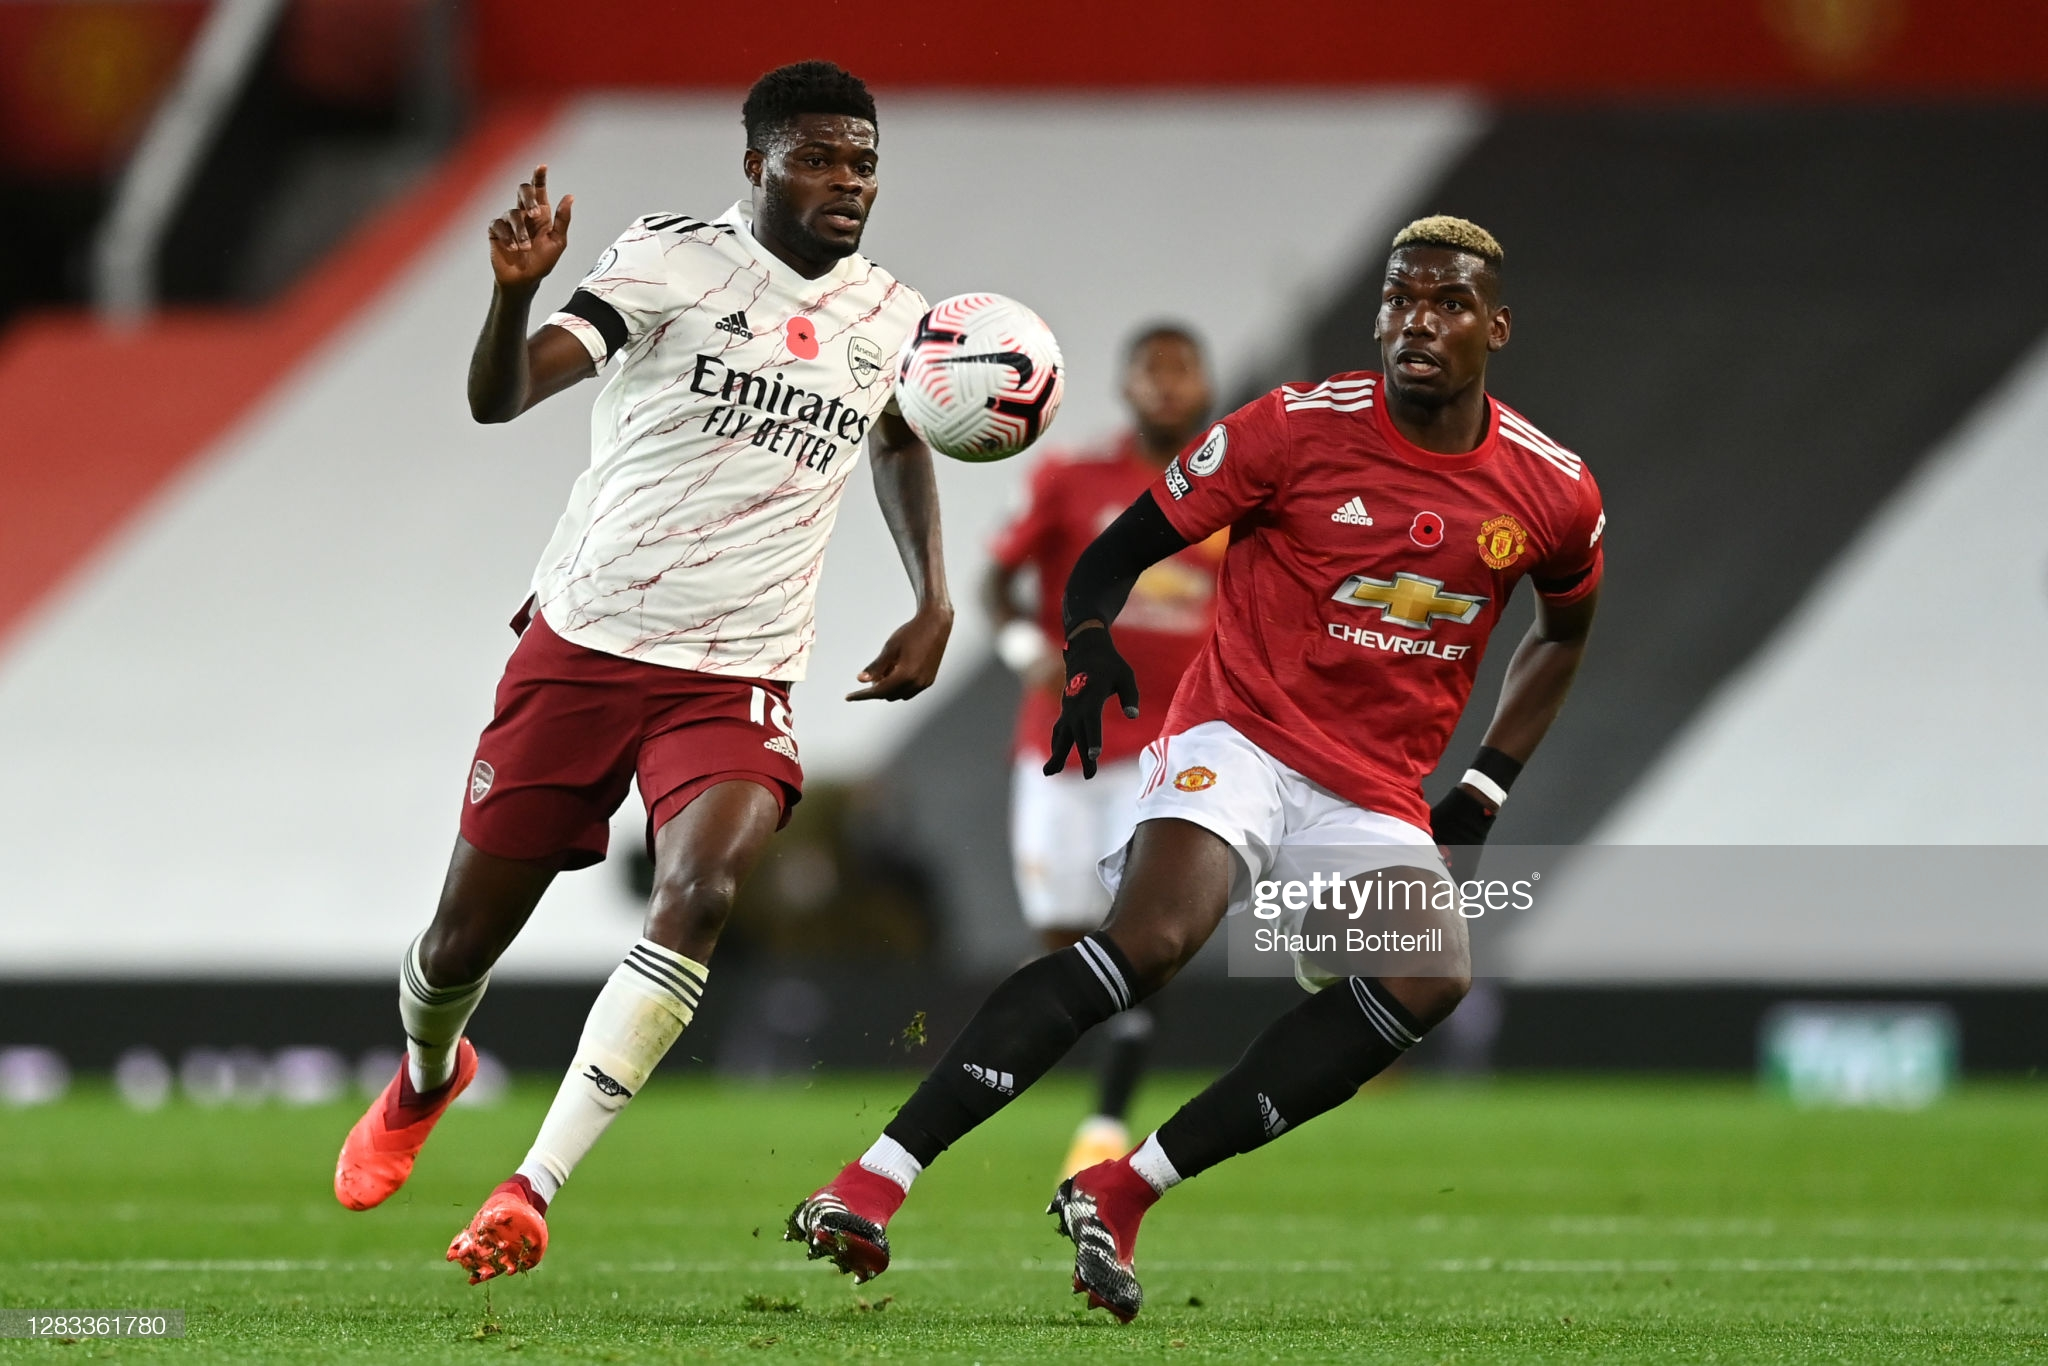 Manchester United vs Arsenal: Thomas Partey and Paul Pogba